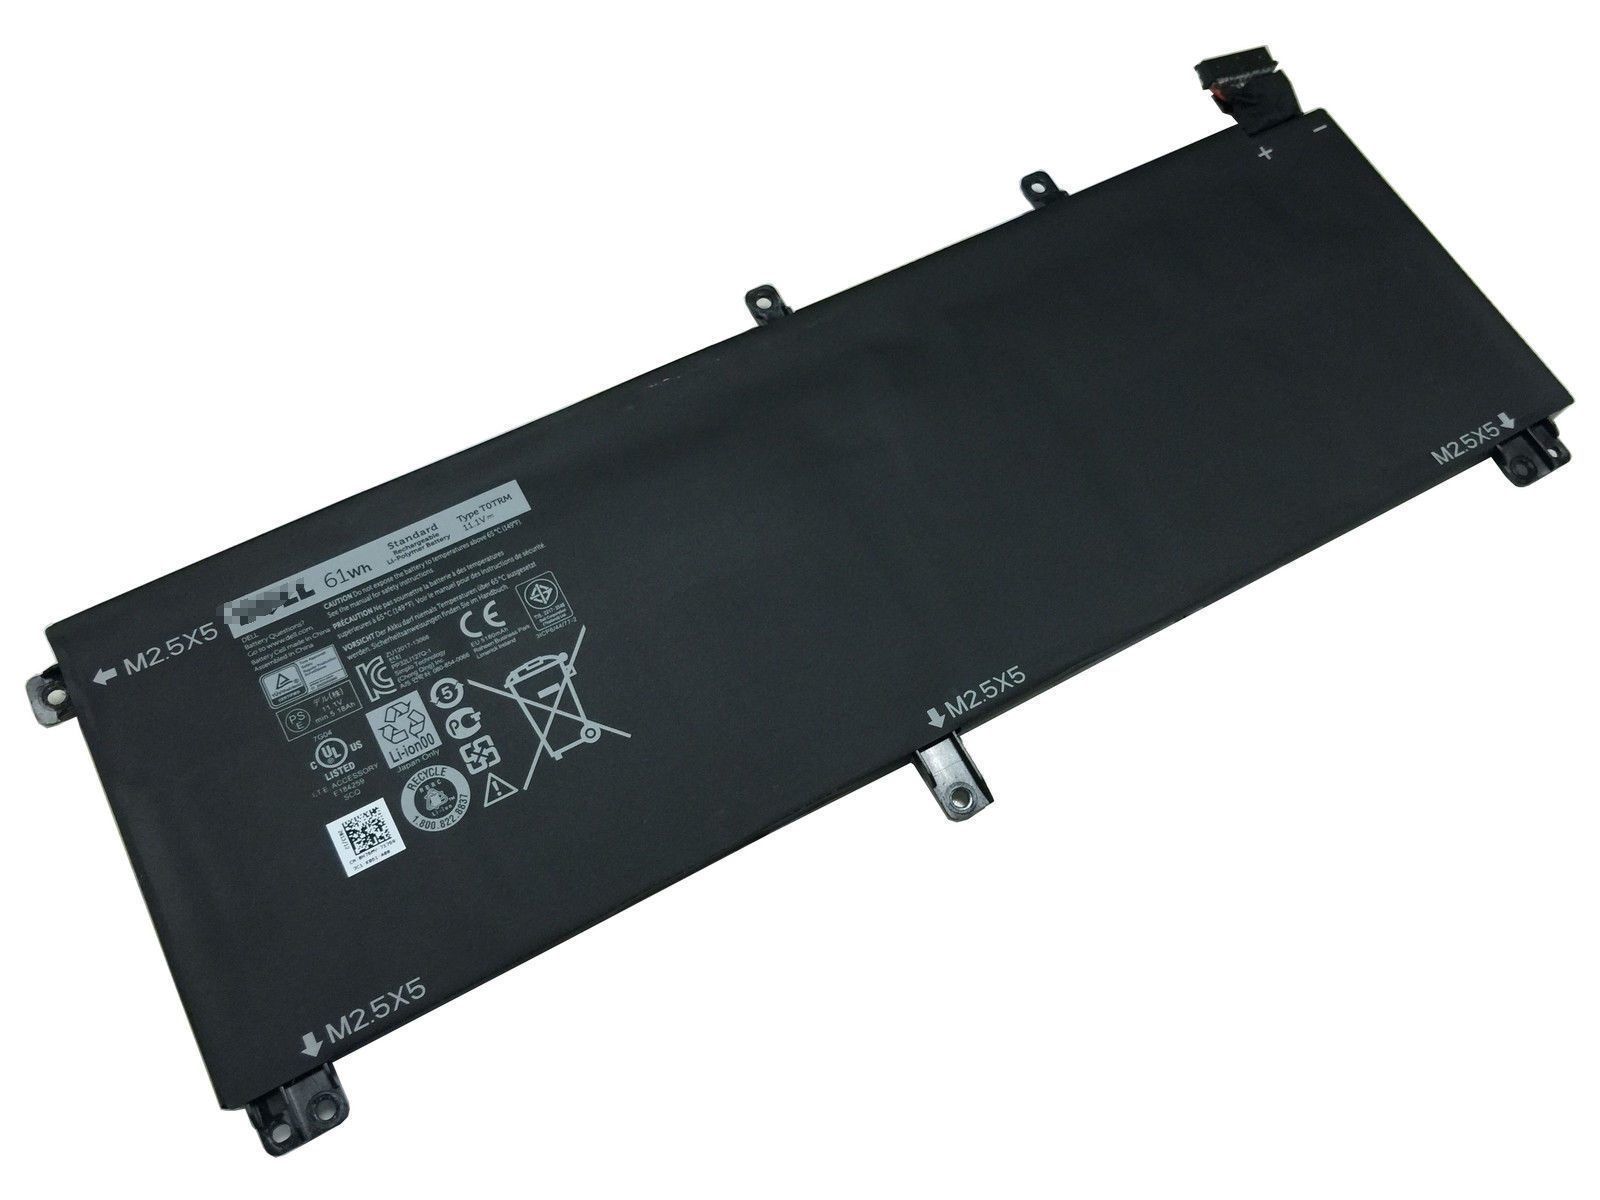 dell laptop battery replacement instructions